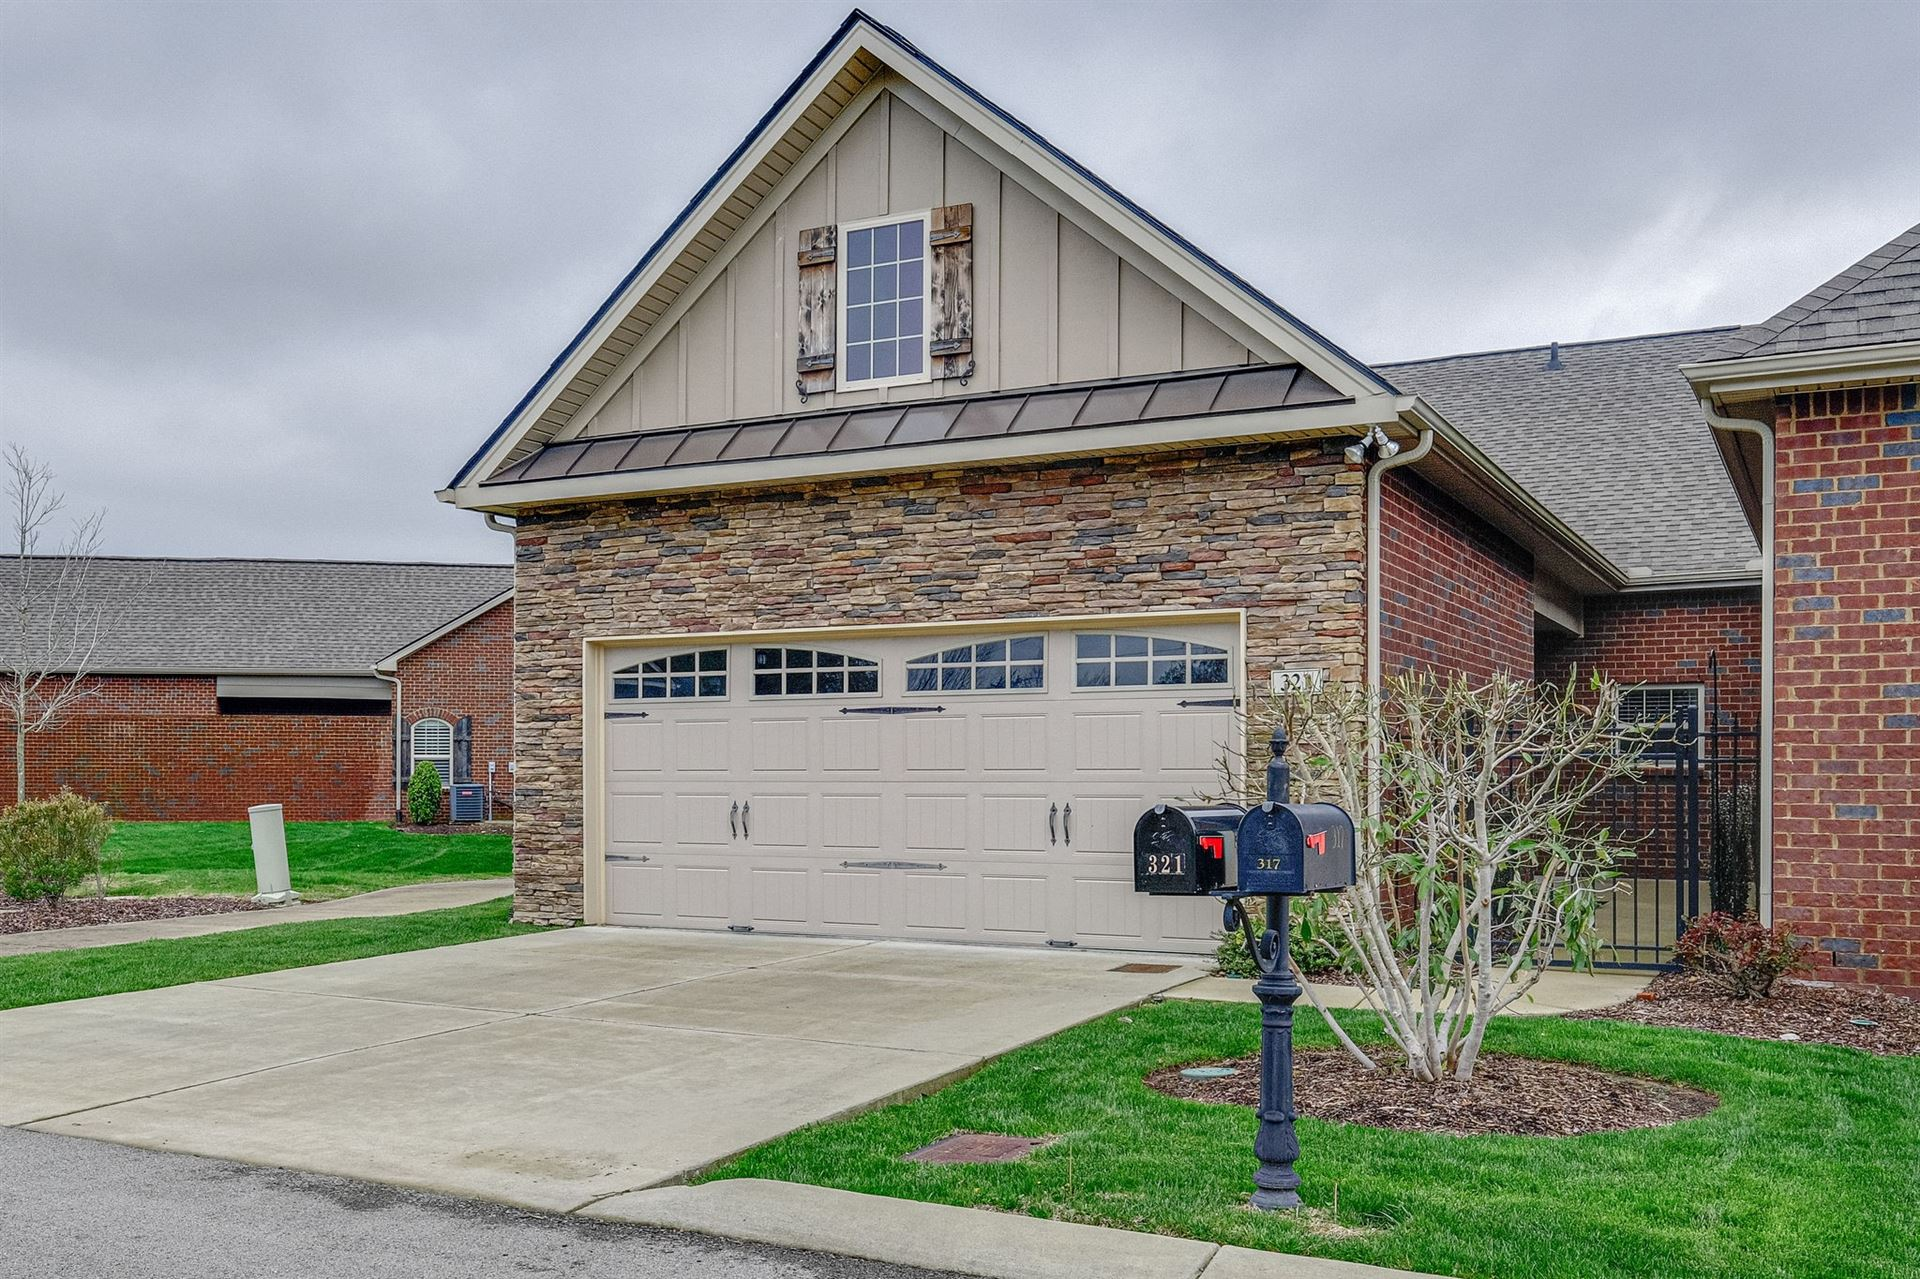 Photo of 321 Thesing Ct, Nolensville, TN 37135 (MLS # 2135623)